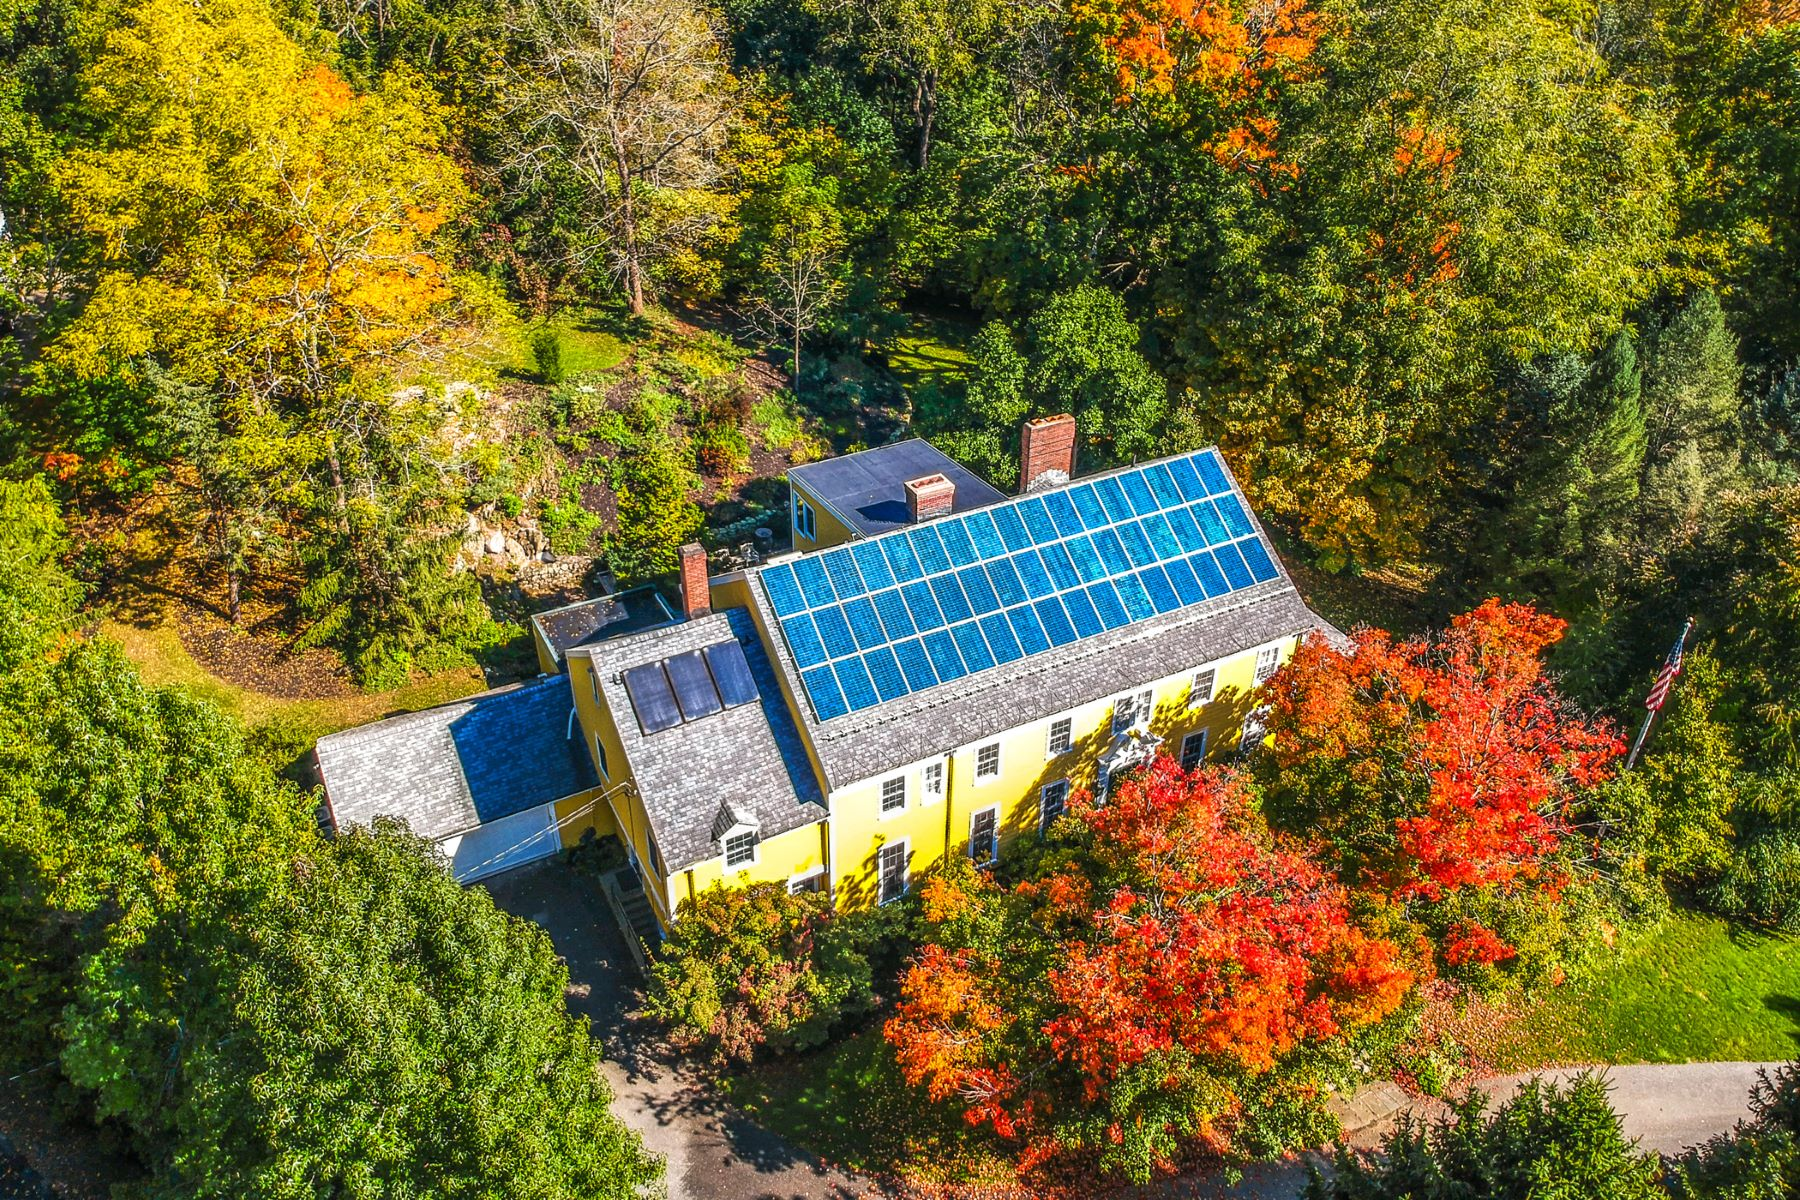 Single Family Home for Active at 21 Hastings Road, Lexington 21 Hastings Rd Lexington, Massachusetts 02421 United States